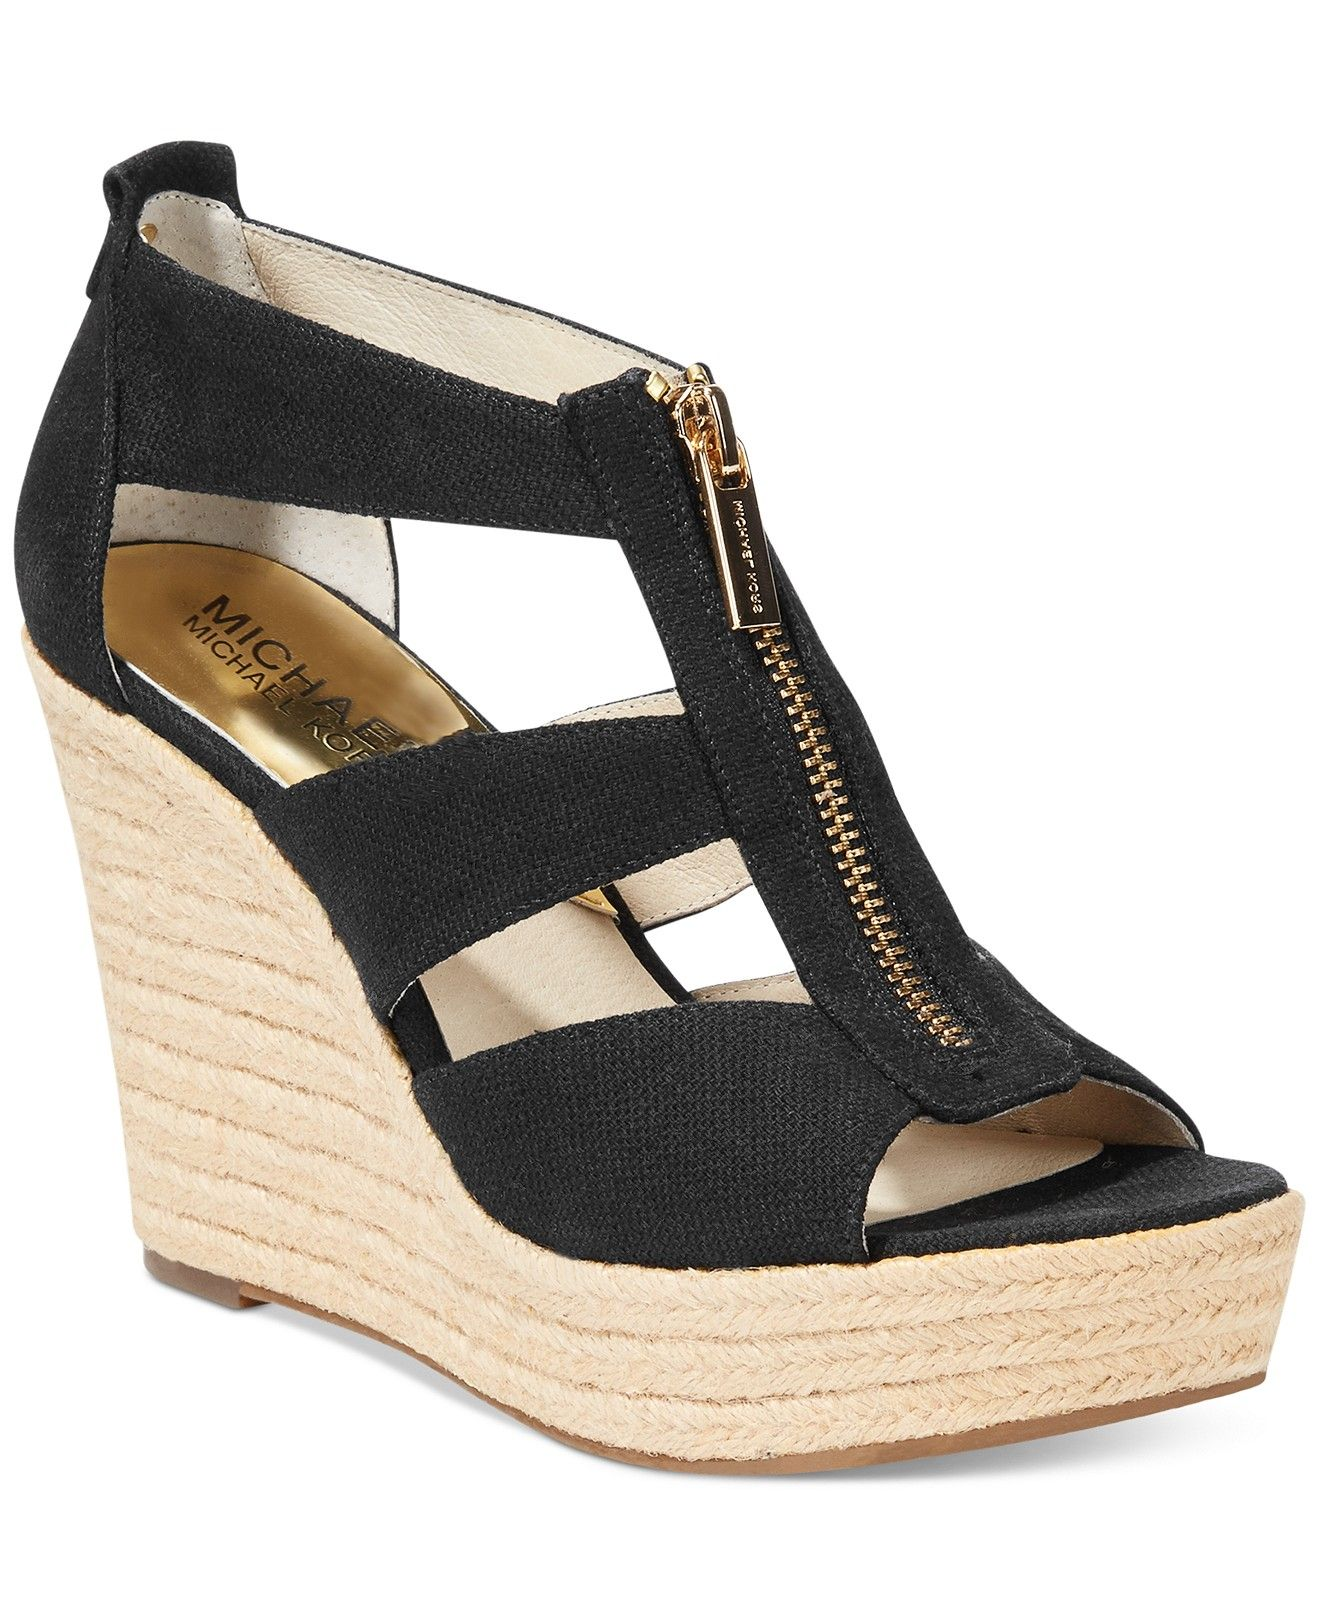 011ffb1e1cd MICHAEL Michael Kors Damita Platform Wedge Sandals - MICHAEL Michael Kors -  Shoes - Macy s